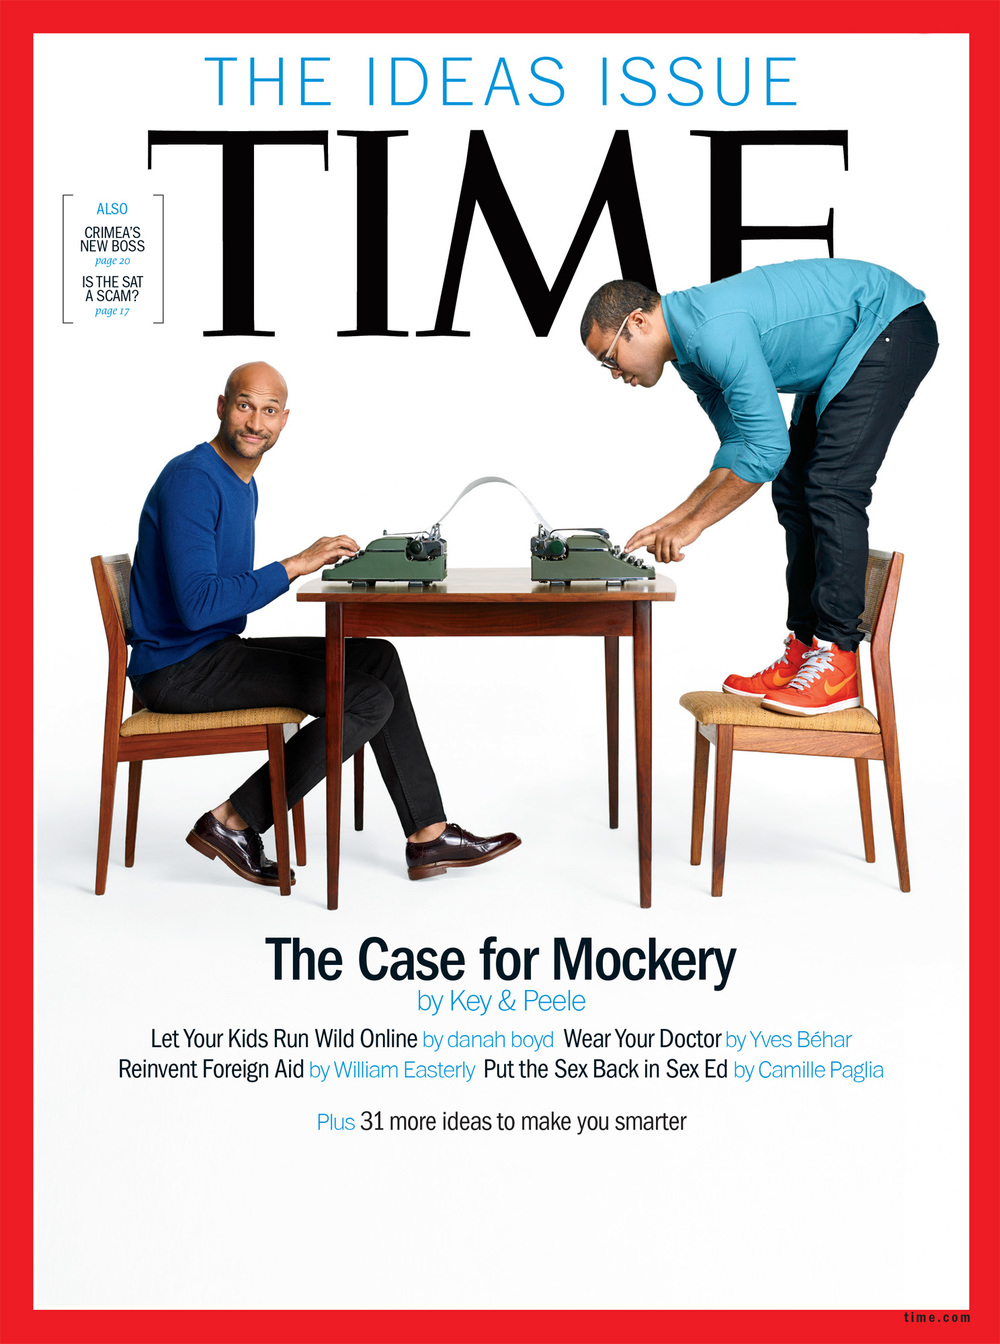 Key & Peele, Time, Covers